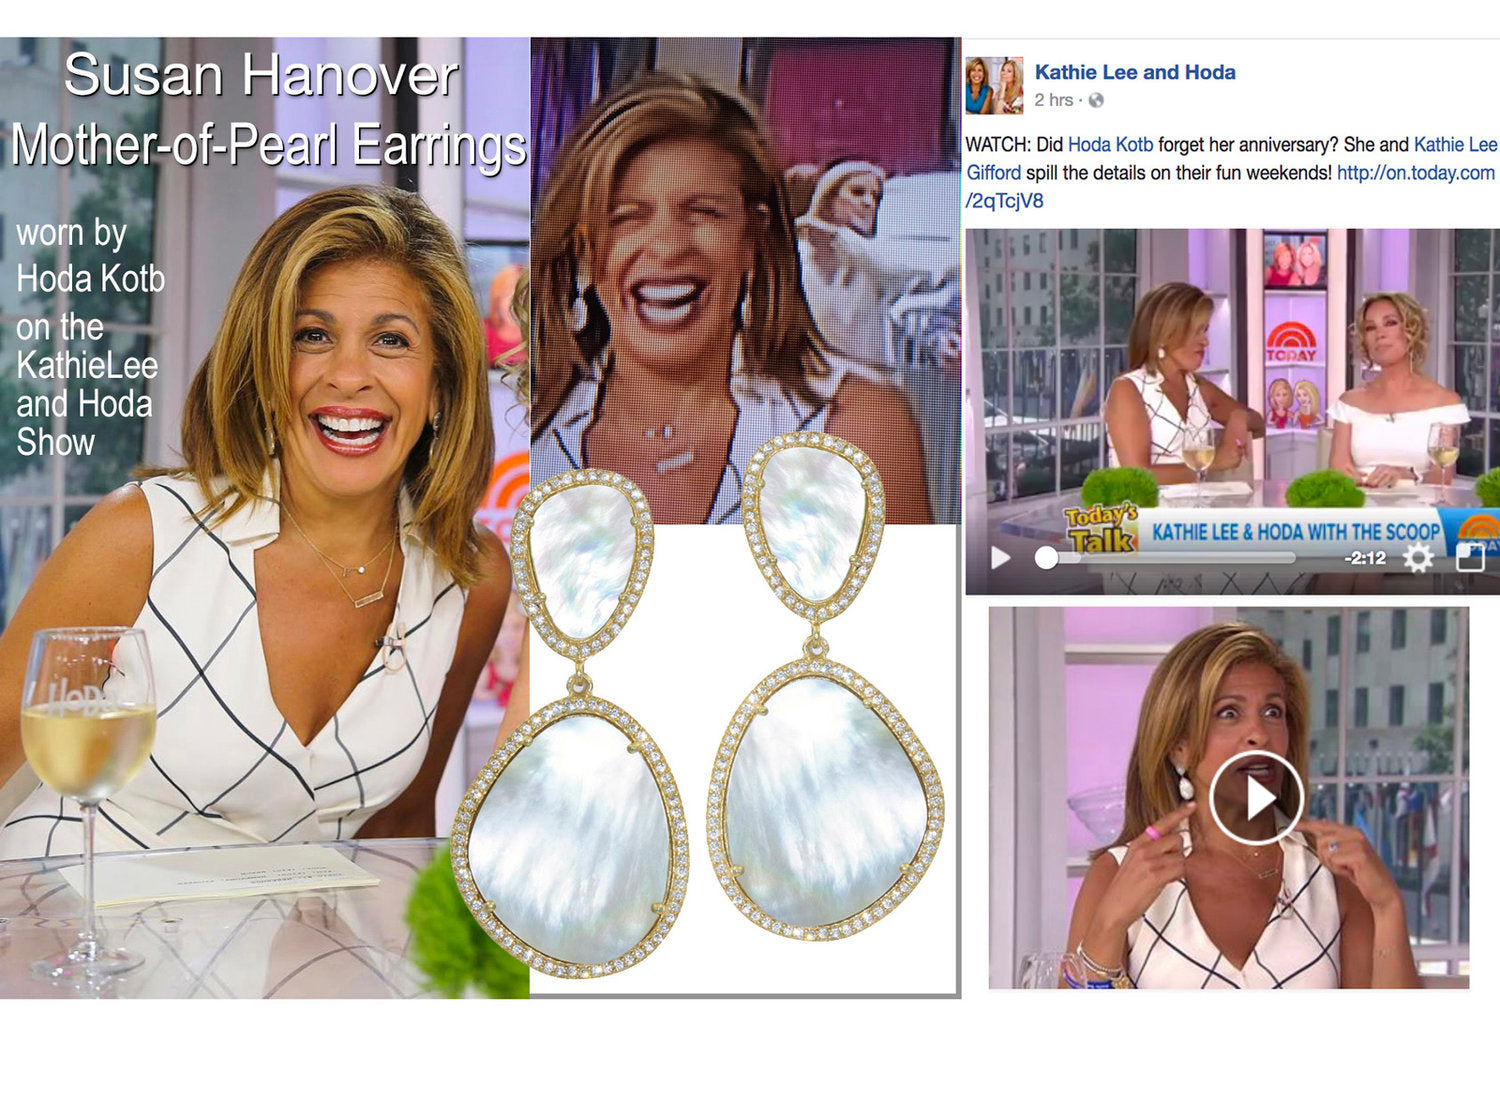 Hoda Kotb wears Susan Hanover   Mother-of-Pearl earrings   on the Today Show